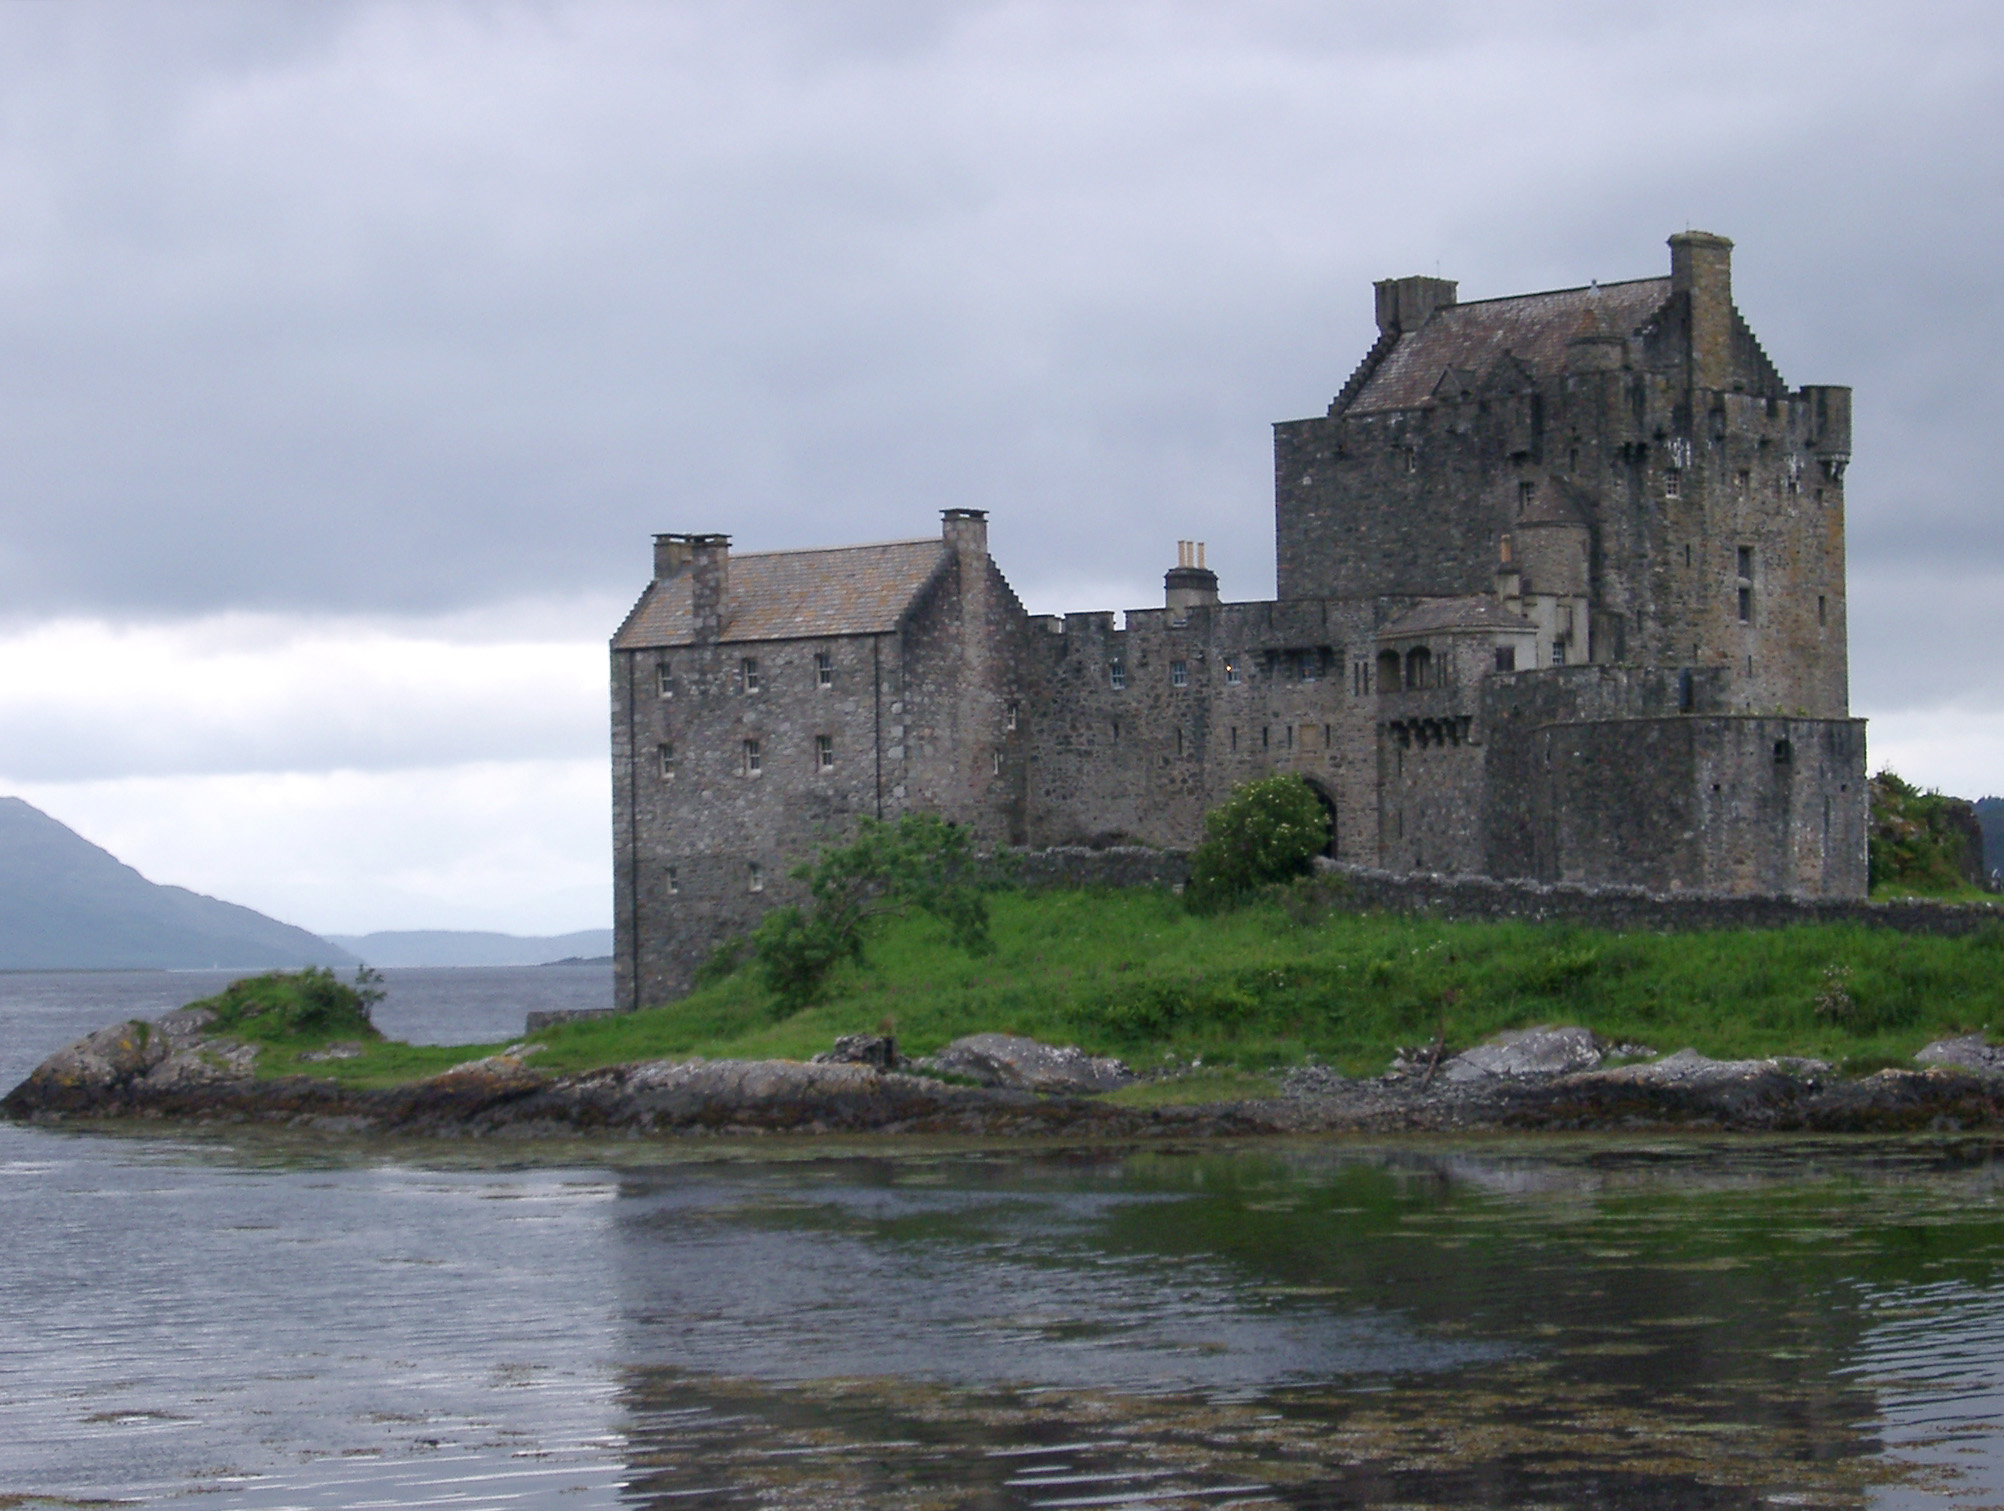 Eilean Donan Castle, Scotland standing on its island in the centre of Loch Duich on a calm cloudy day